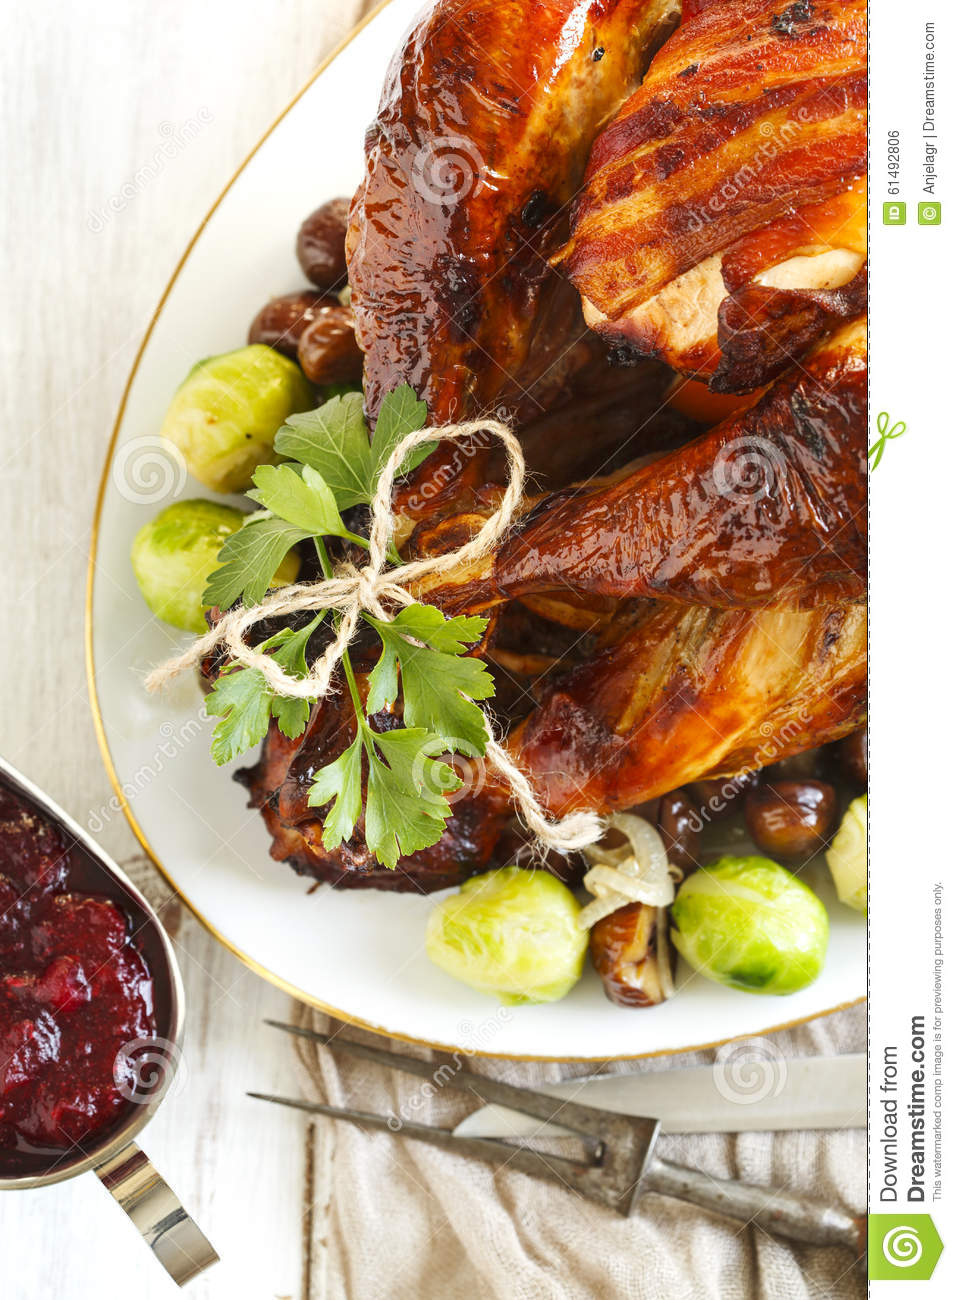 Roasted Brussels Sprouts With Bacon And Chestnuts Recipe — Dishmaps